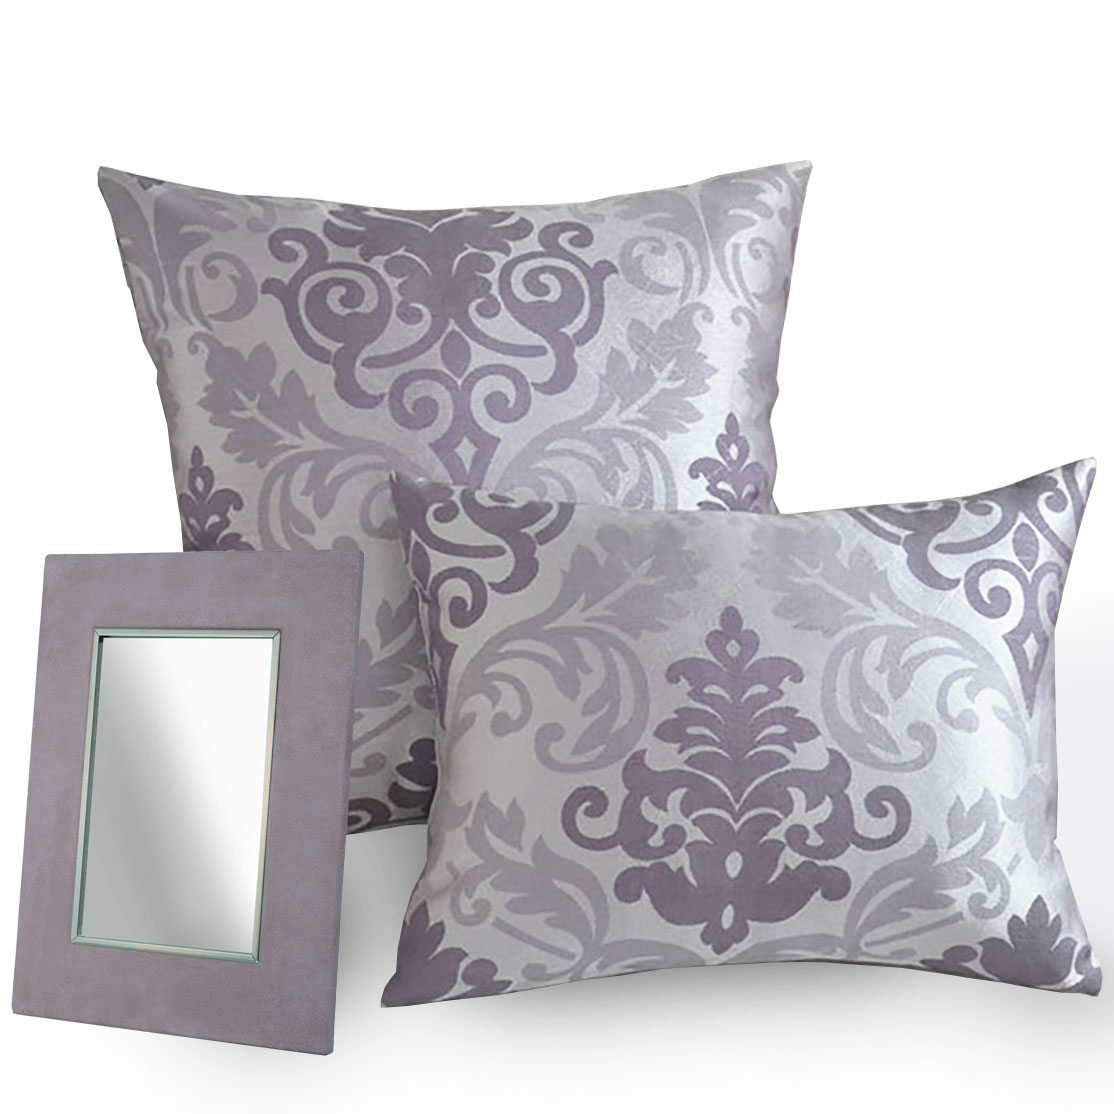 stylish home decoration items from Thailand